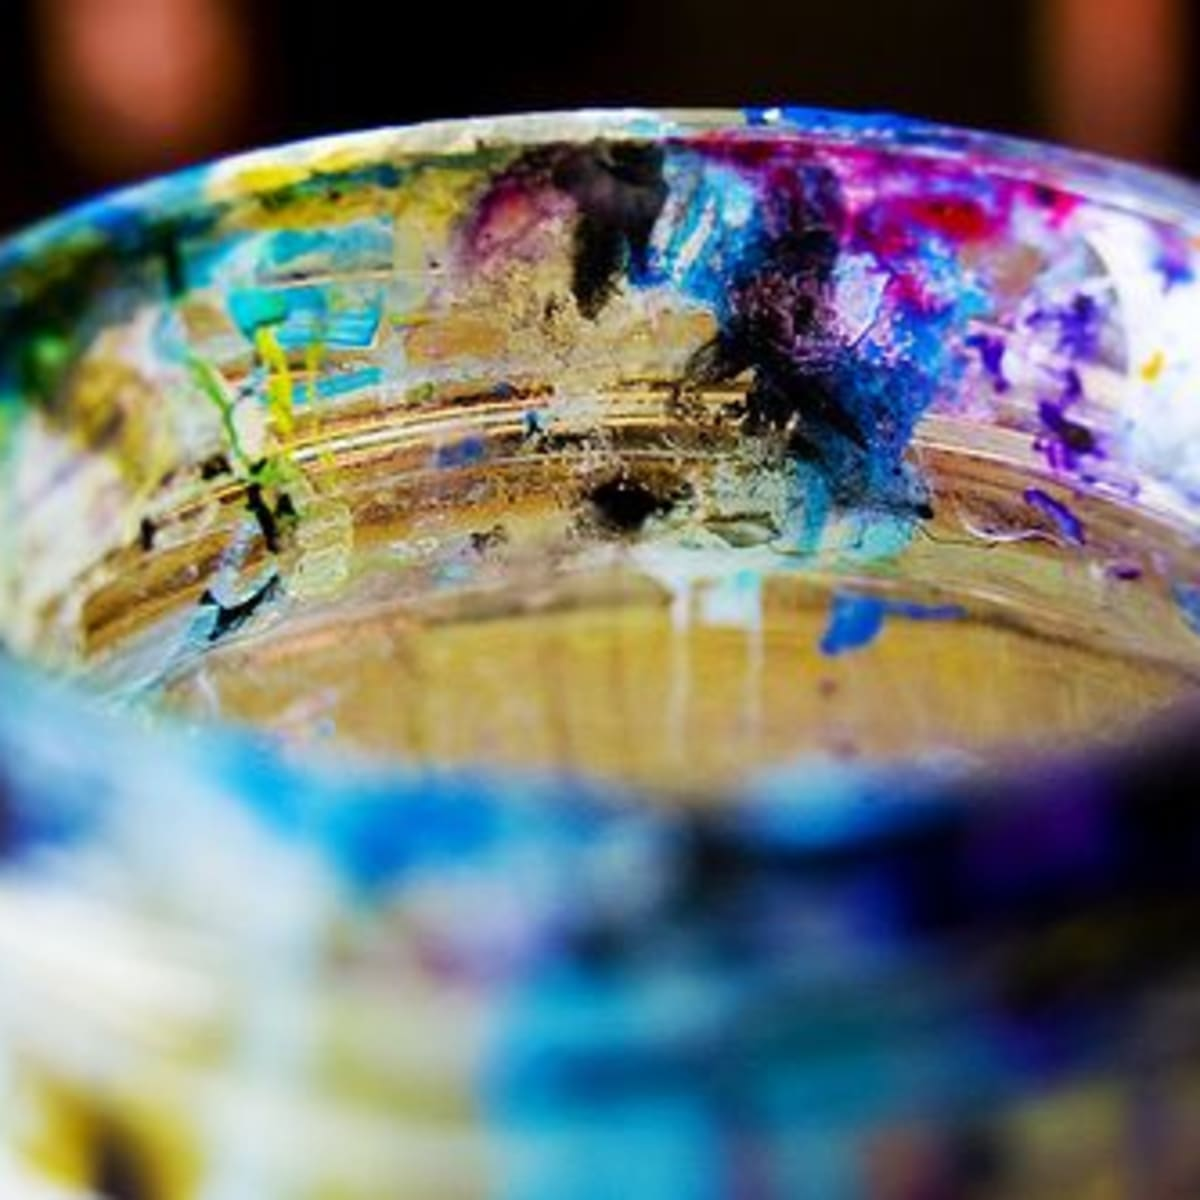 13 Creative Uses For Repurposing Paint Cans Organic Authority